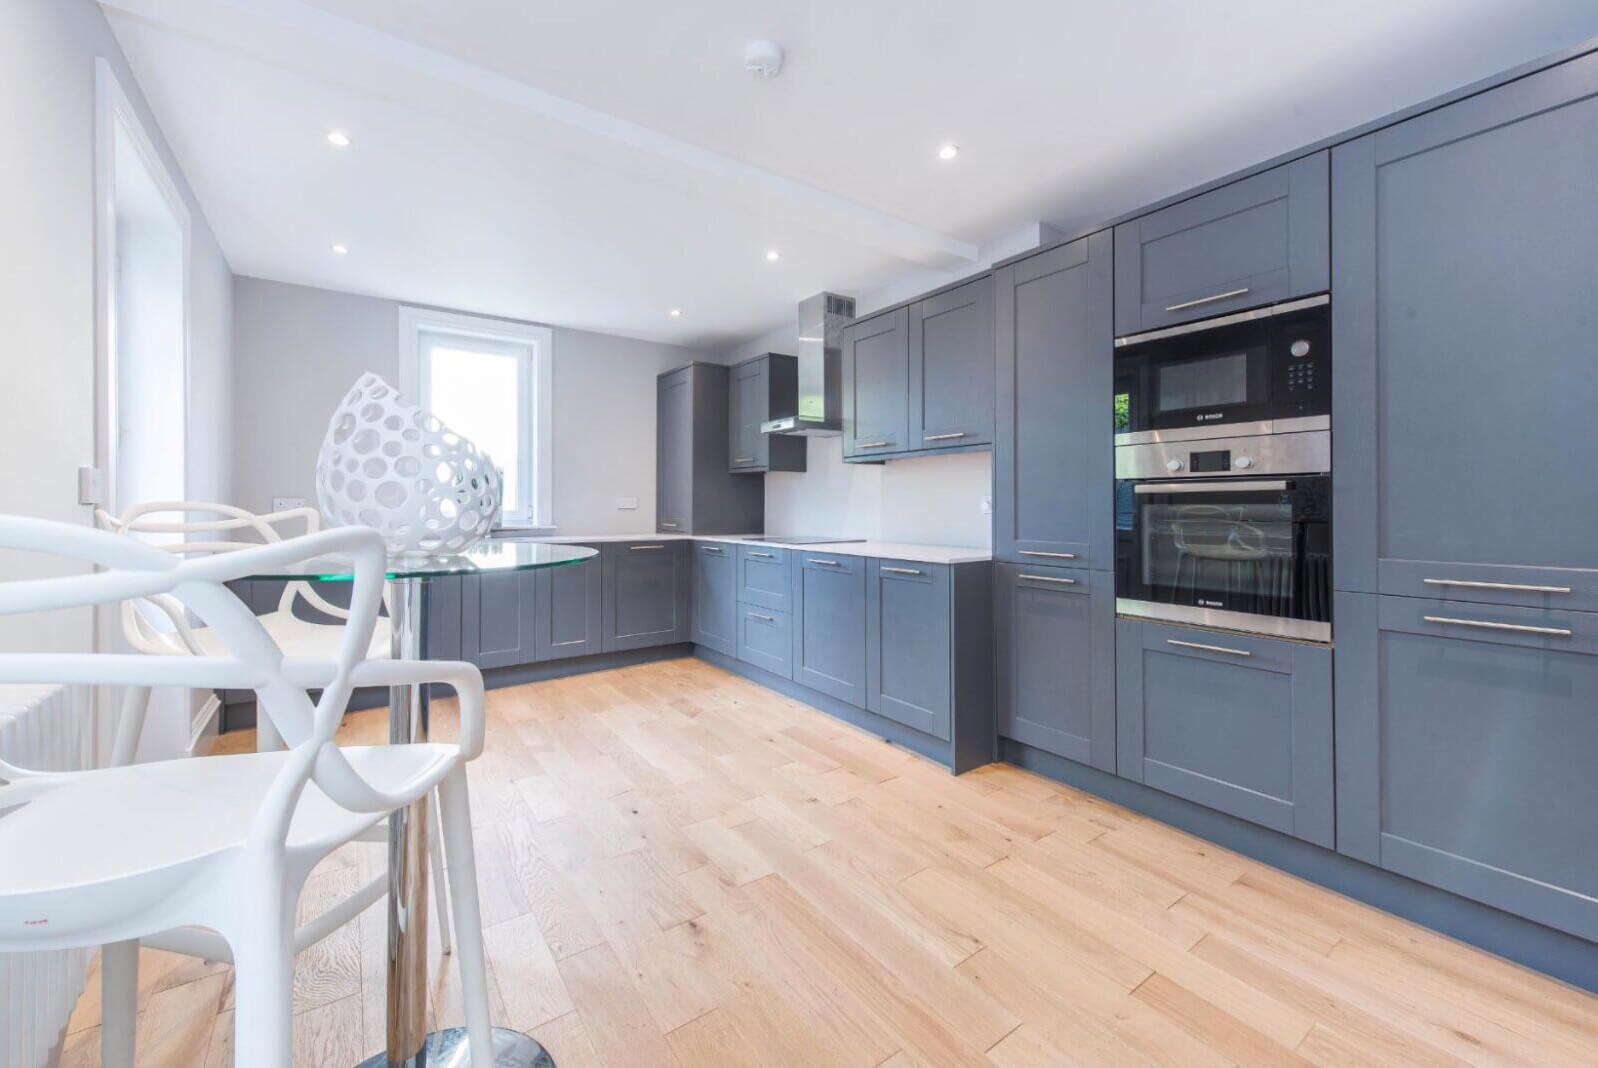 Large modern kitchen with grey panelled units and integrated appliances. Small tall table and two chairs. Wooden flooring throughout.